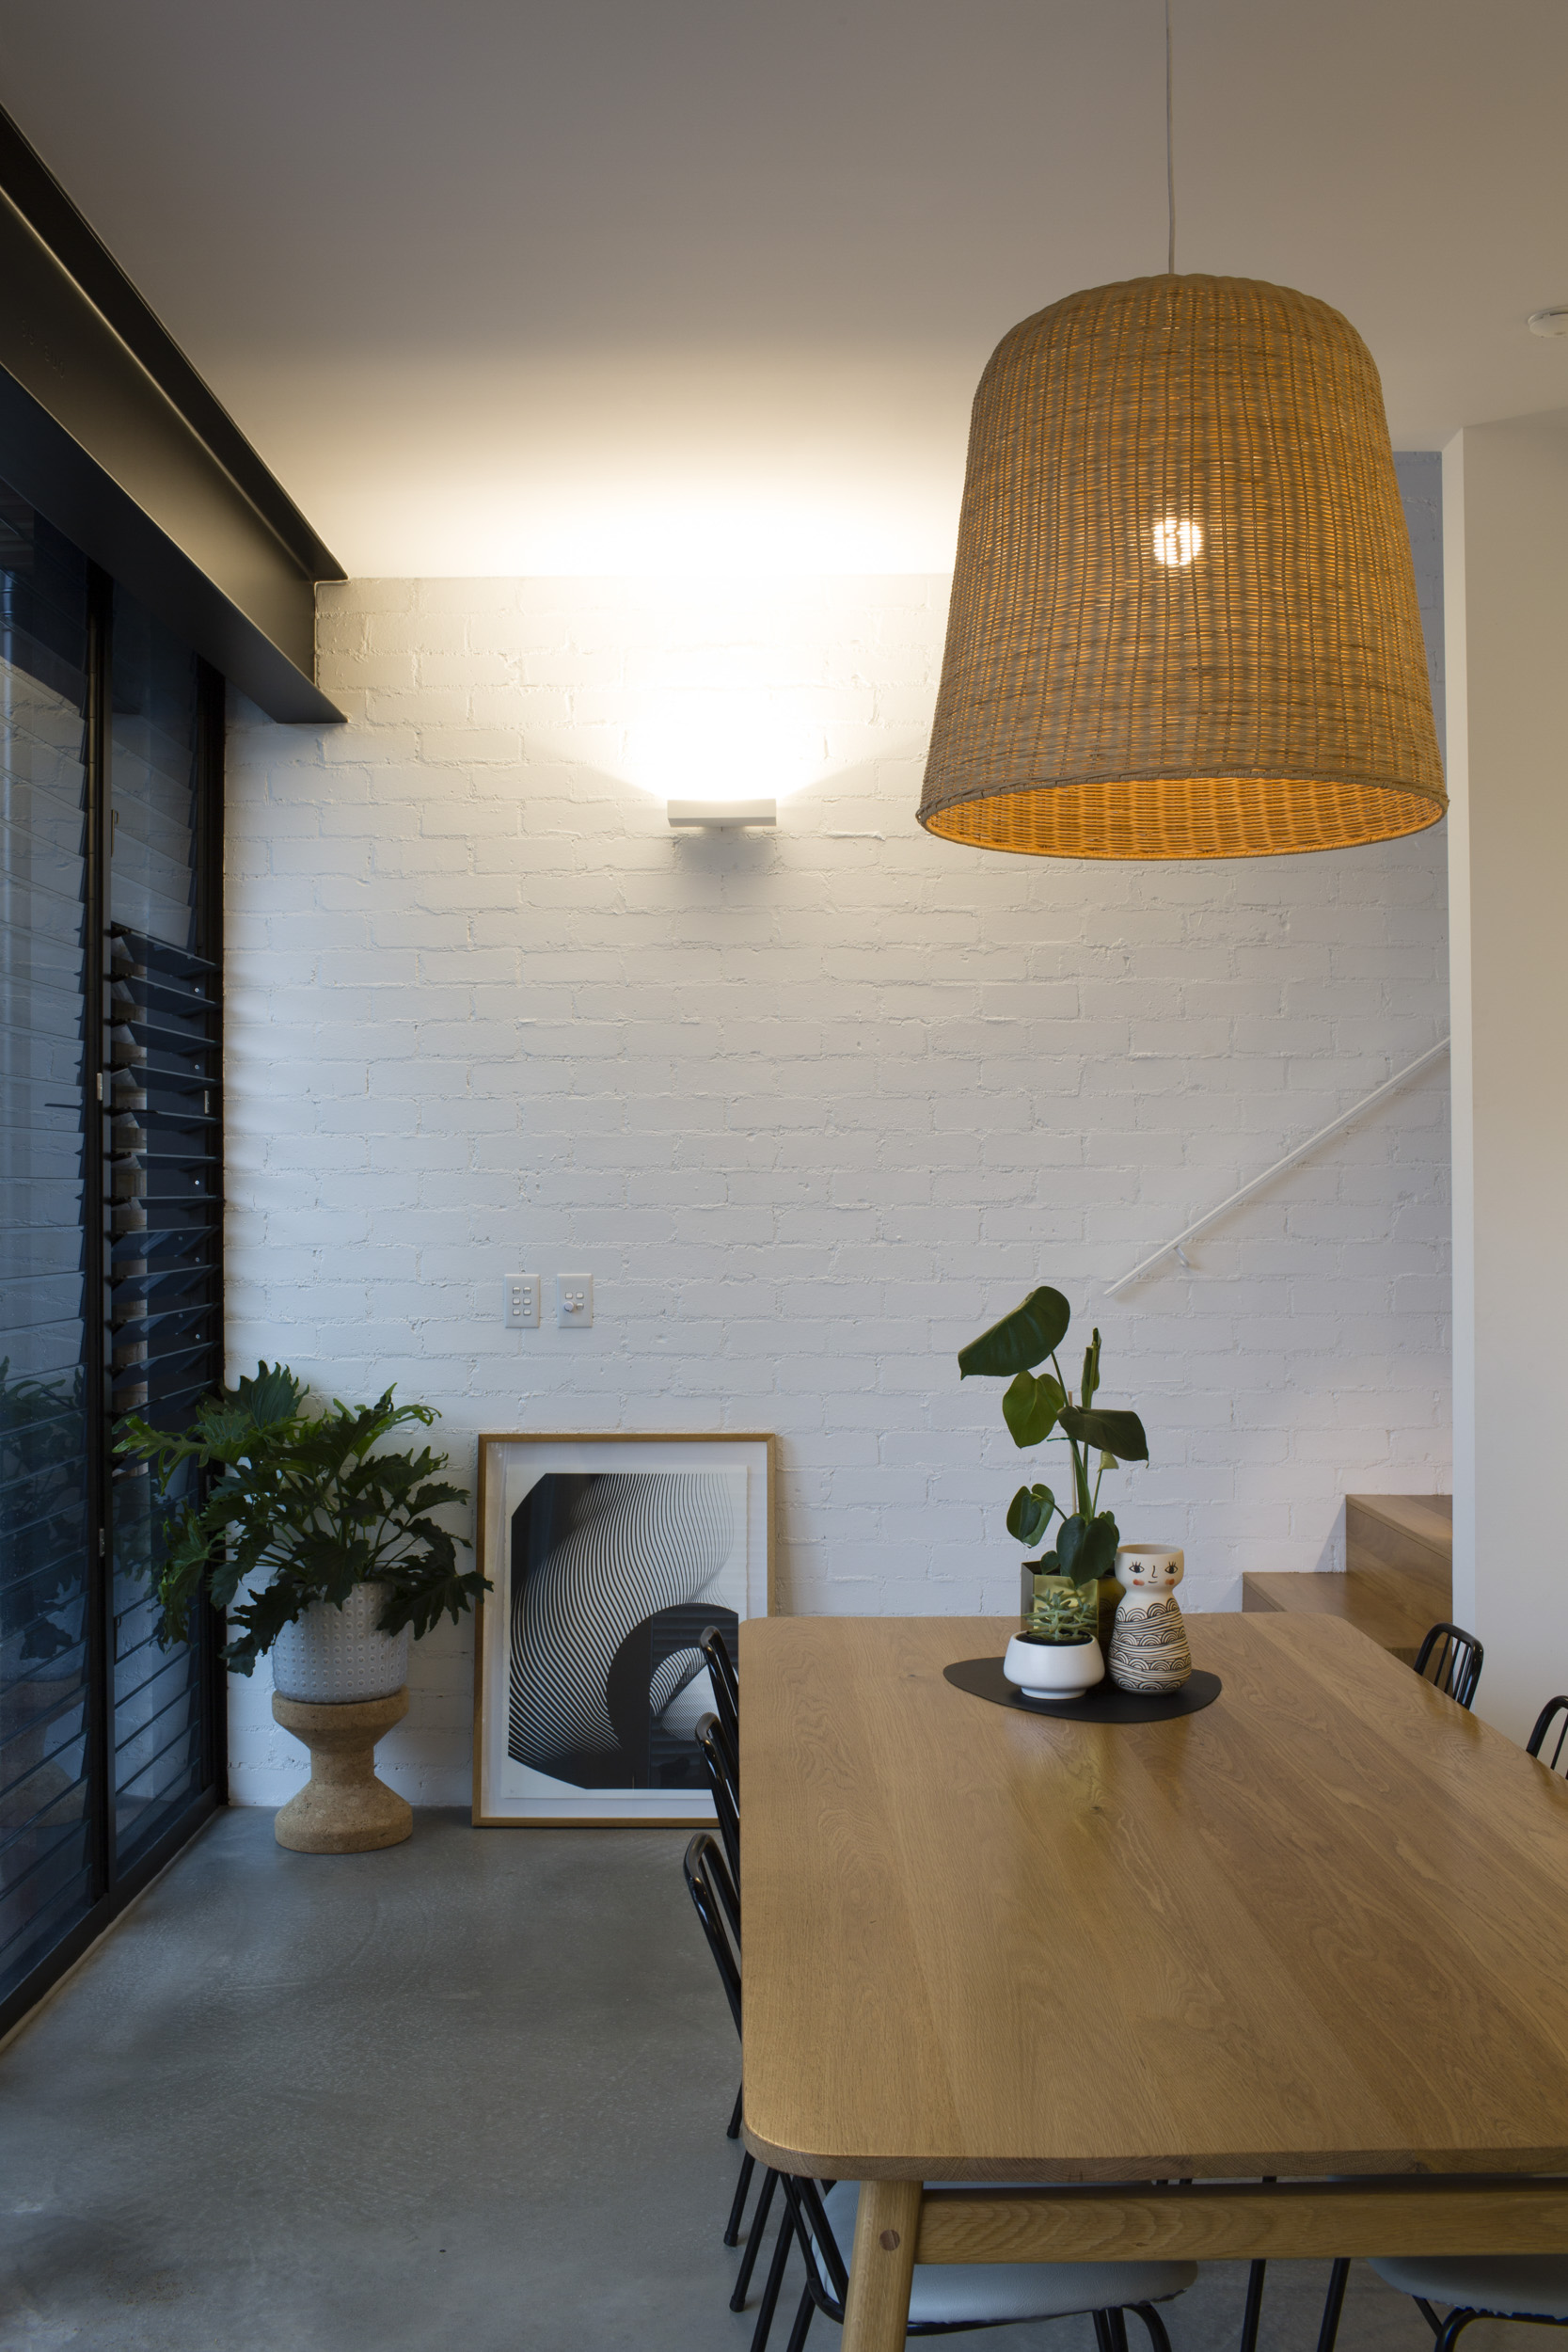 residential_architects_sq_projects_sydney_09.jpg